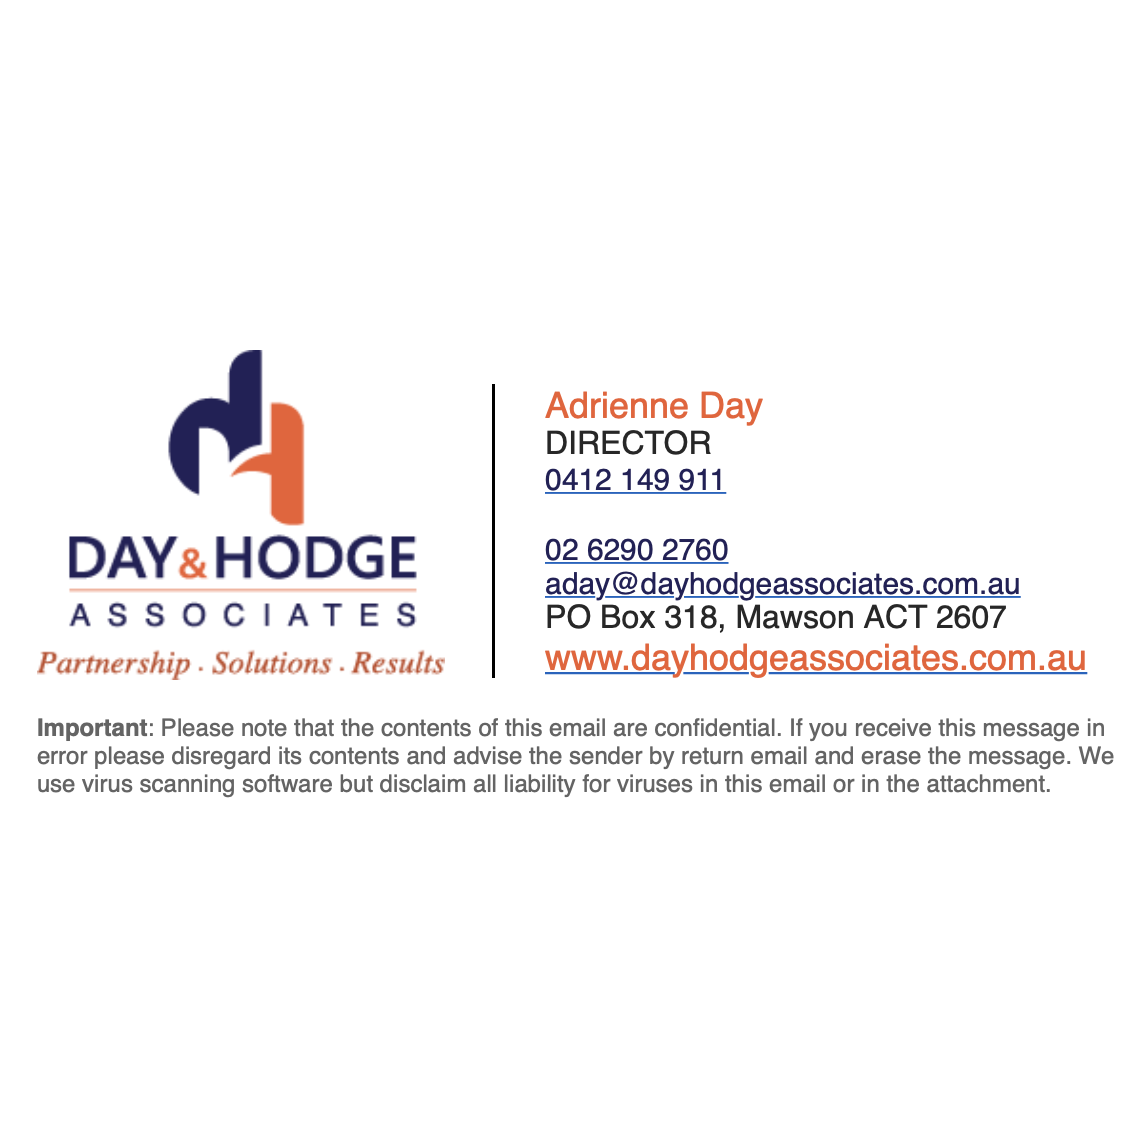 Day & Hodge Associates Email Signature Design from Canberra E-Signature Designers Fresh Creative